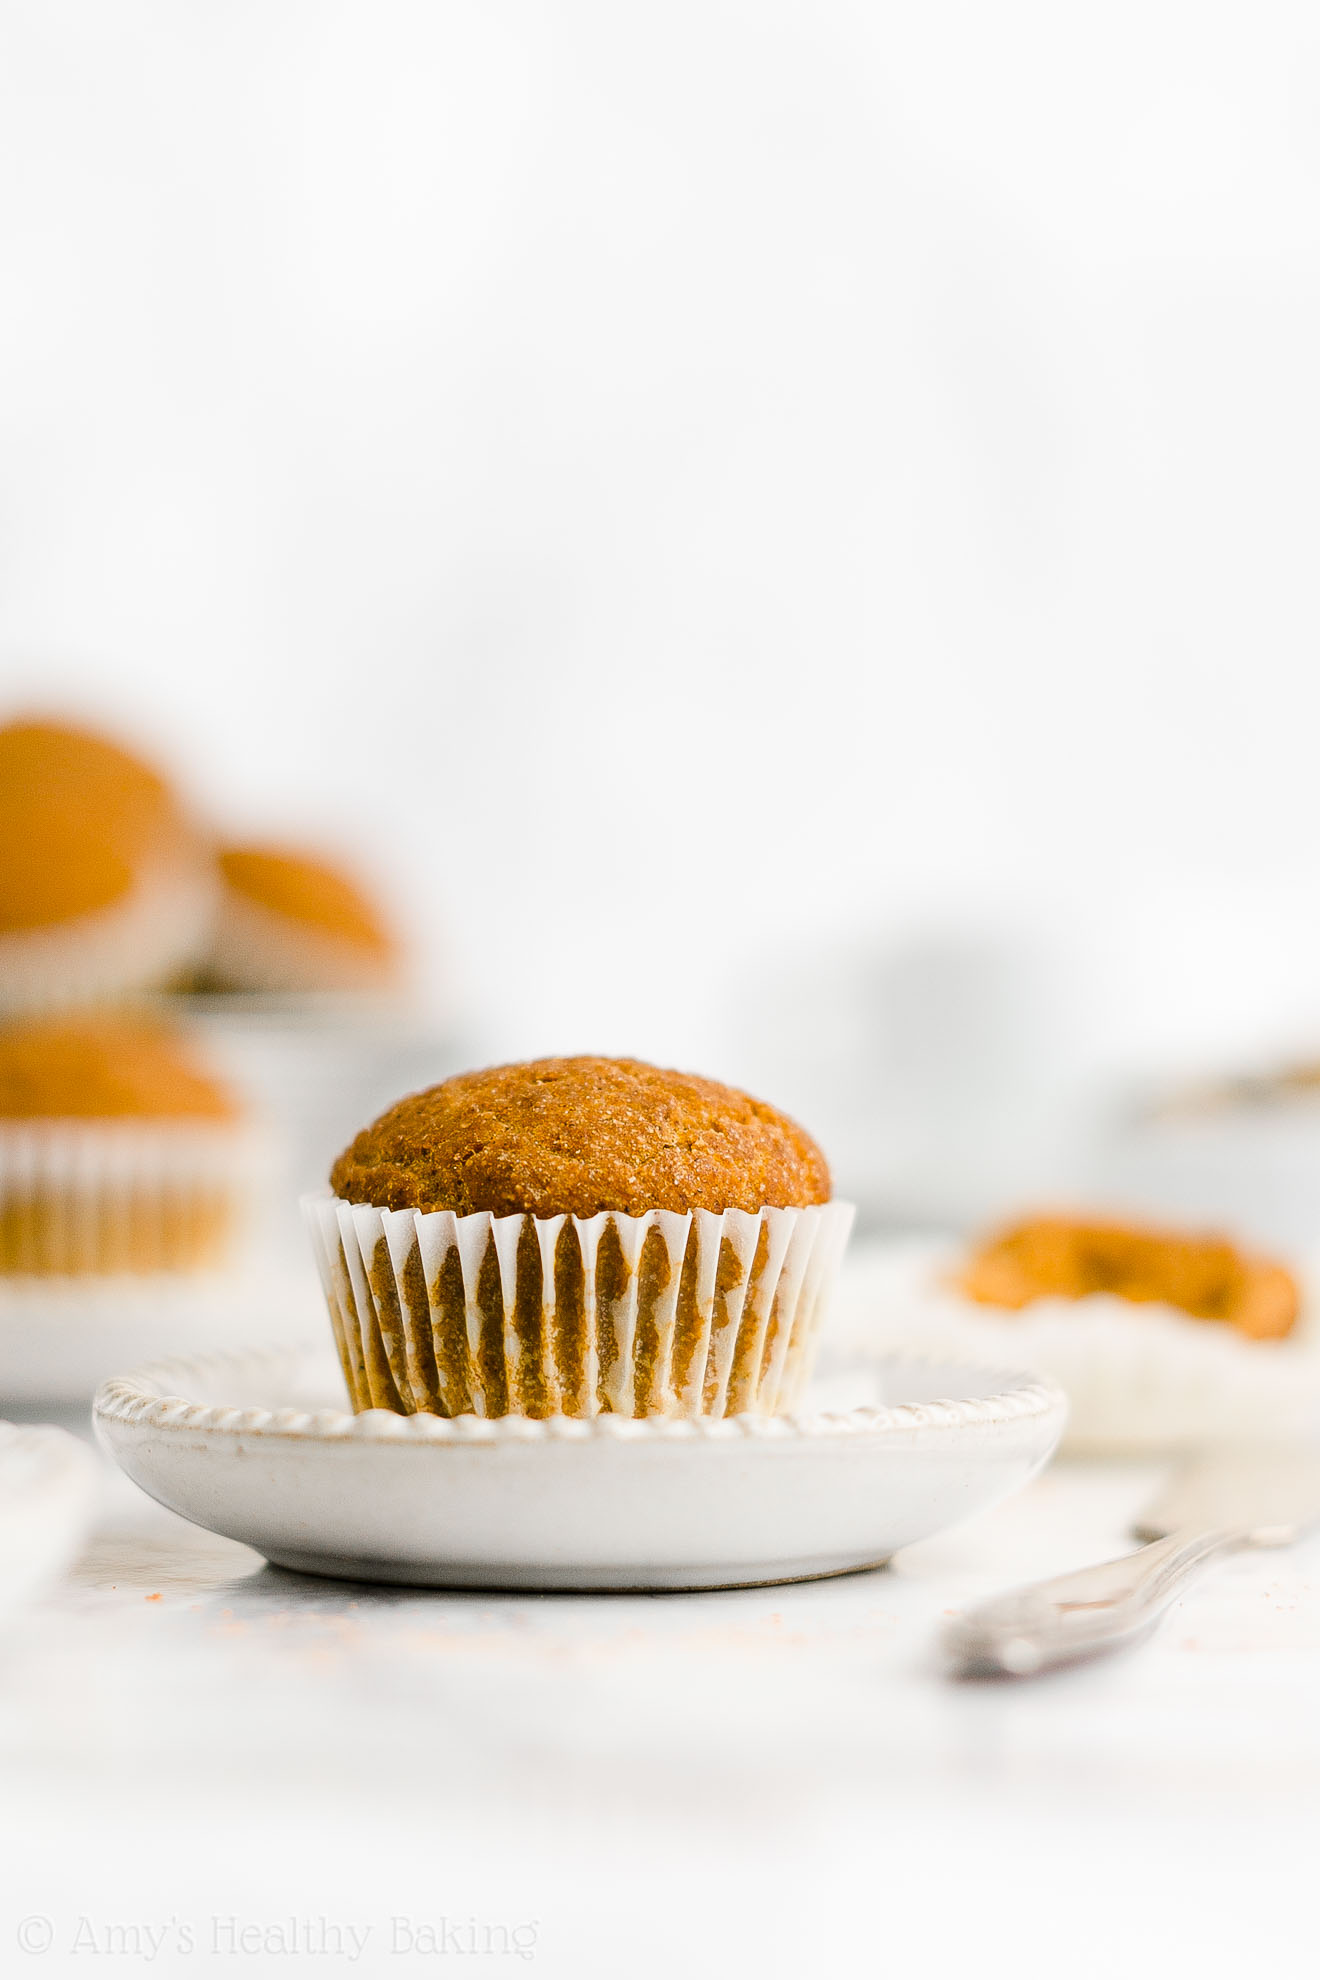 ULTIMATE Best Easy Healthy Whole Wheat Eggless Dairy Free Pumpkin Muffins